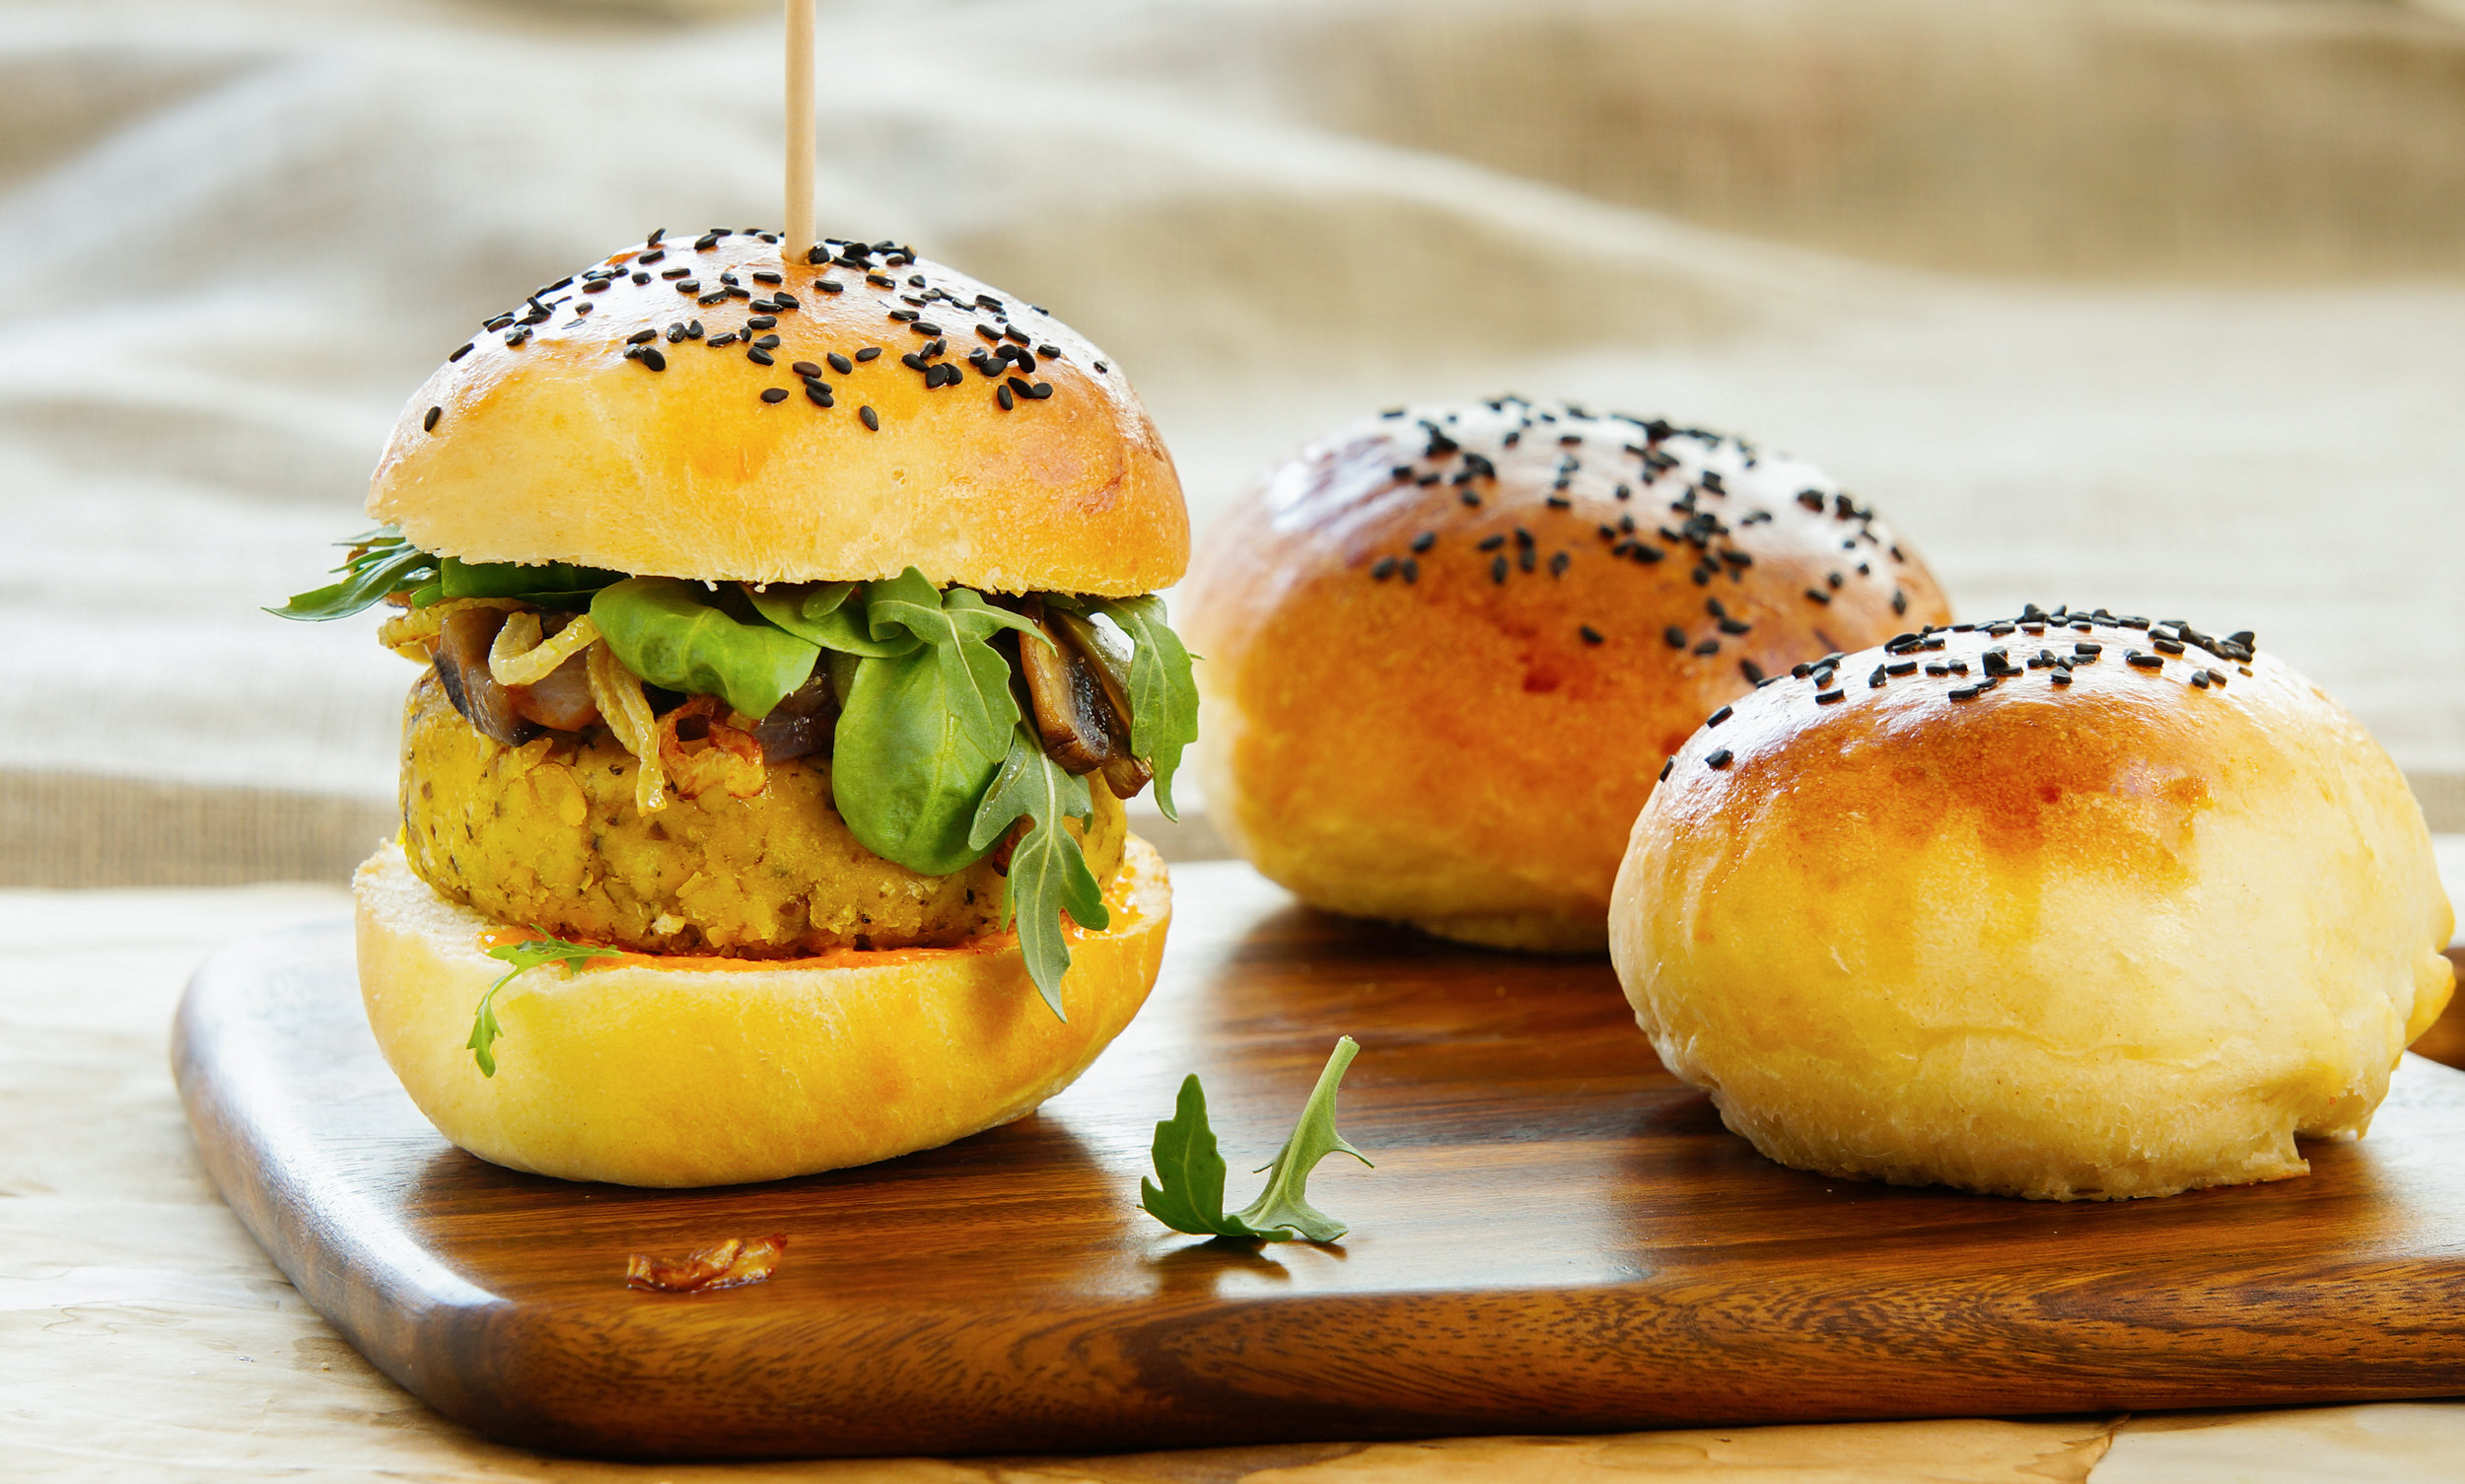 chick pea burger.jpg